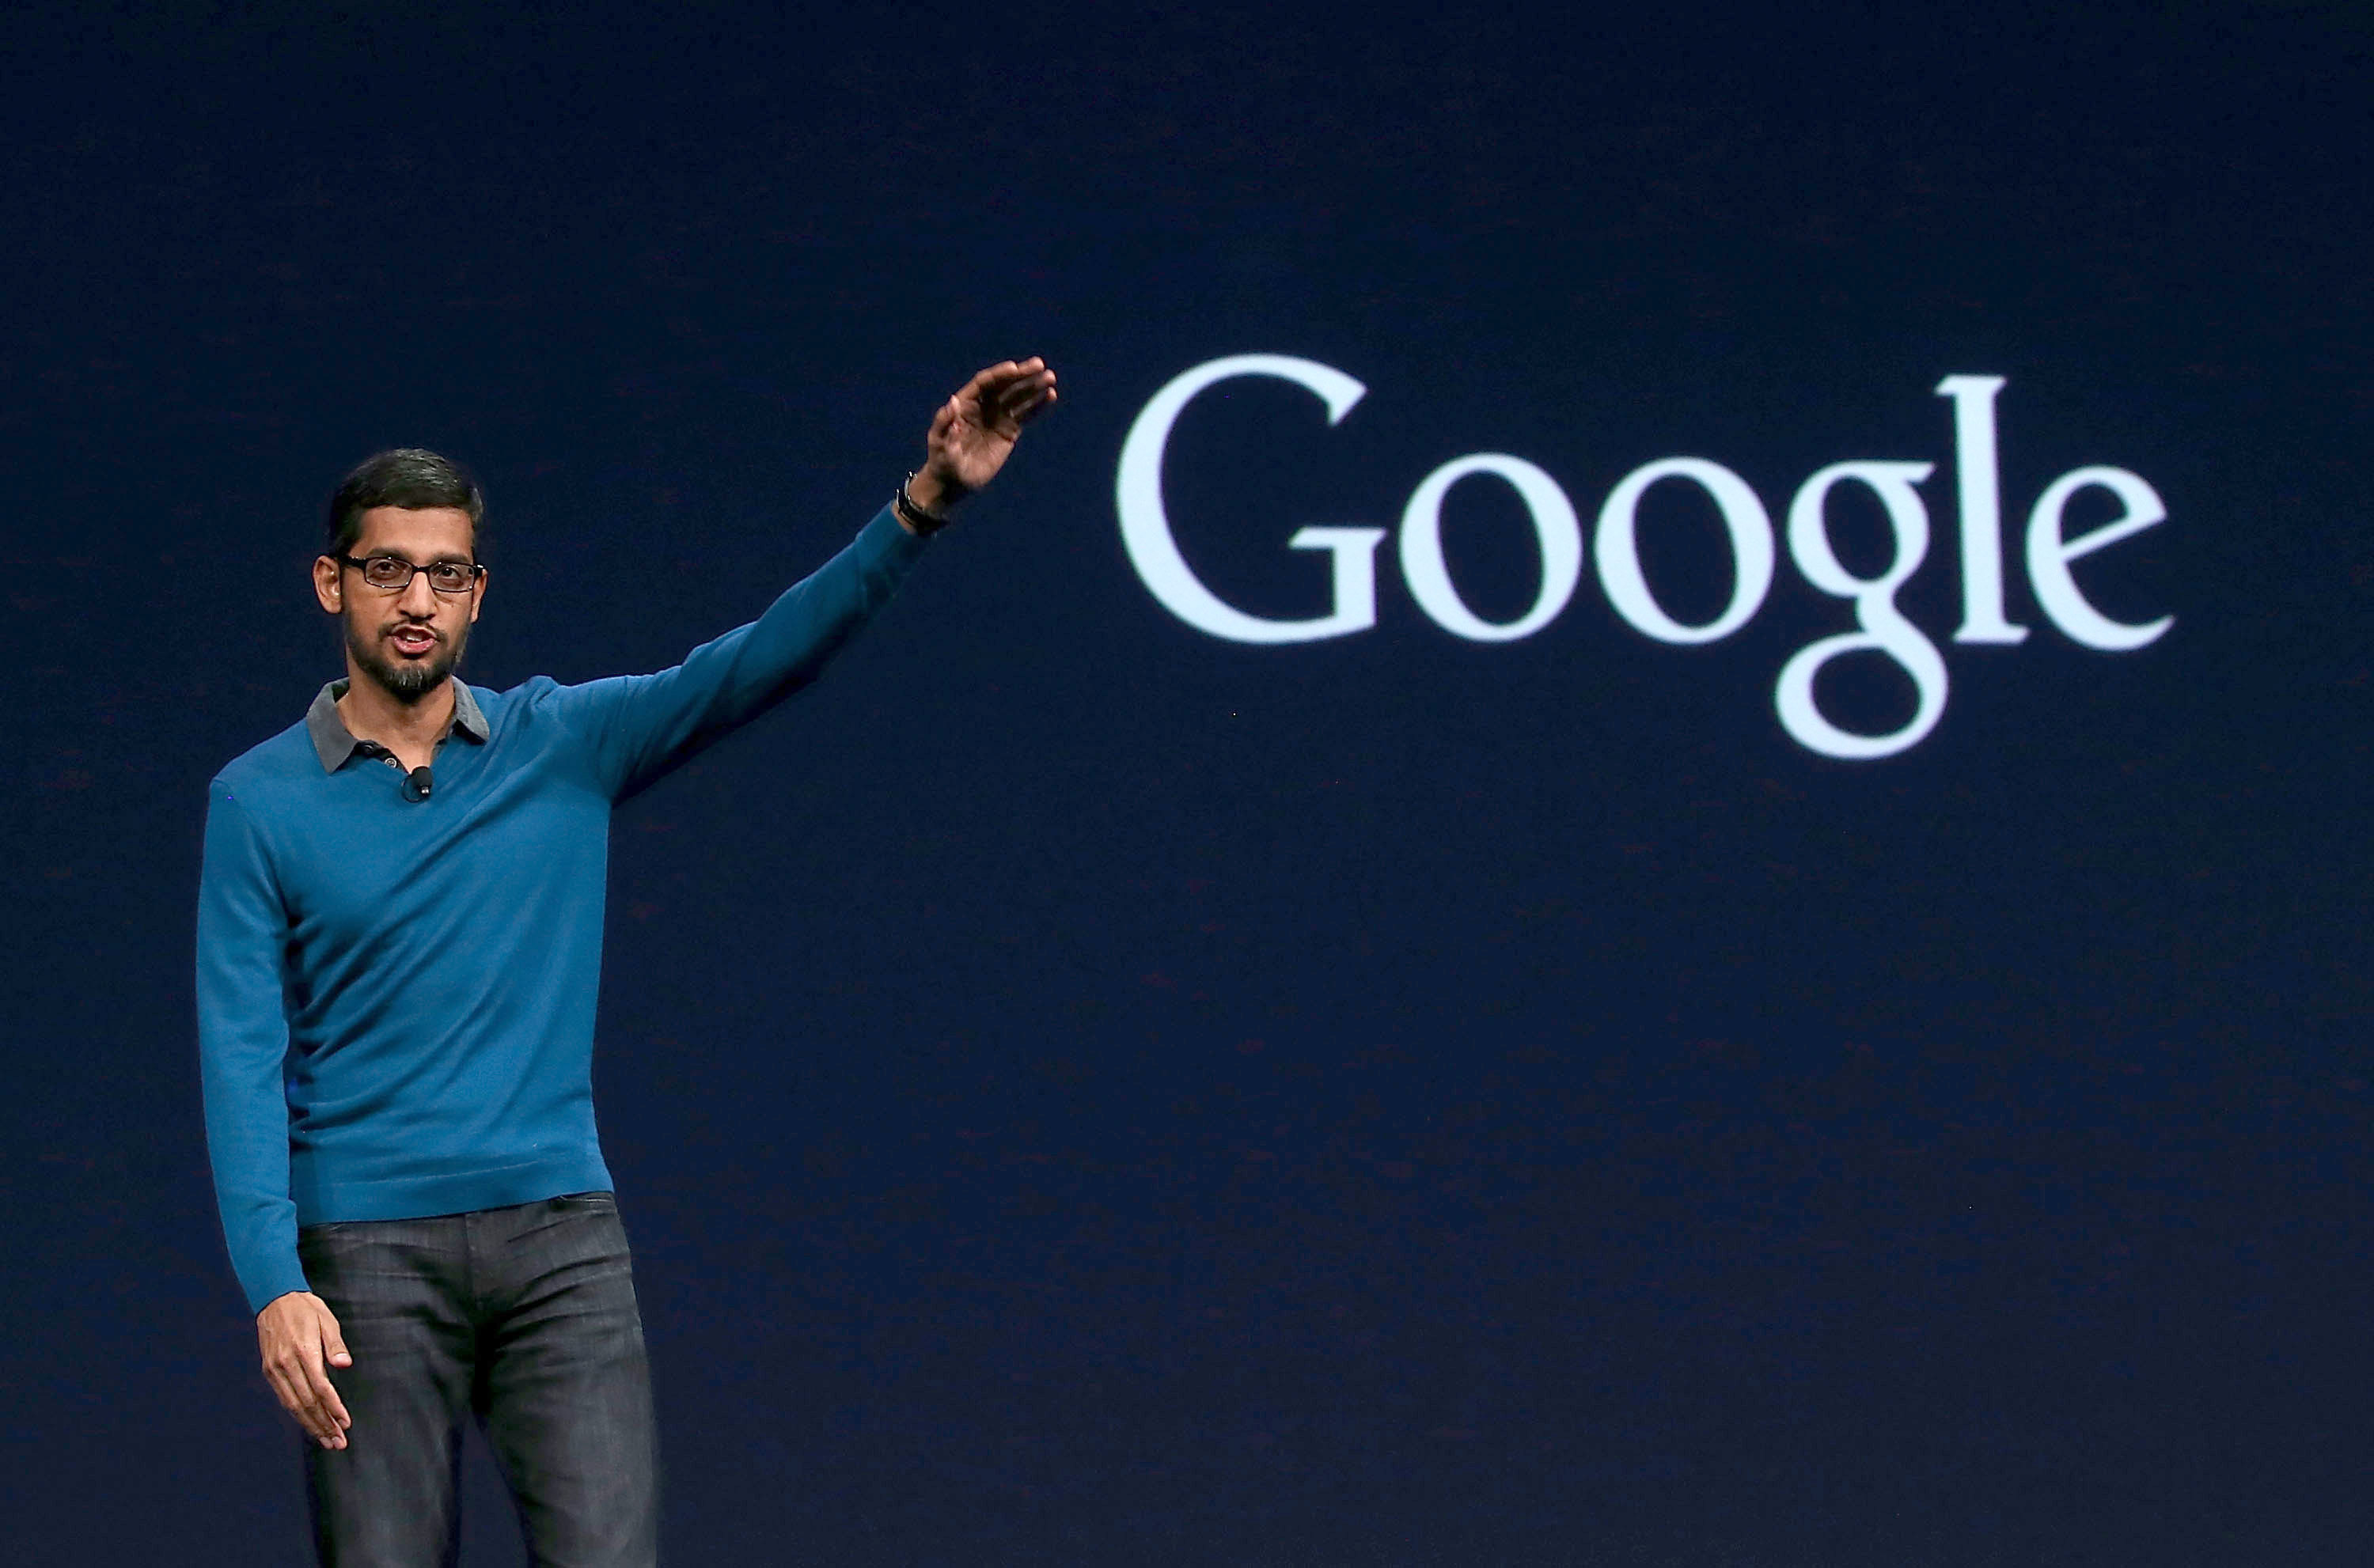 Google senior vice president of product Sundar Pichai delivers the keynote address during the 2015 Google I/O conference on May 28, 2015 in San Francisco, California. (Photo by Justin Sullivan/Getty Images)